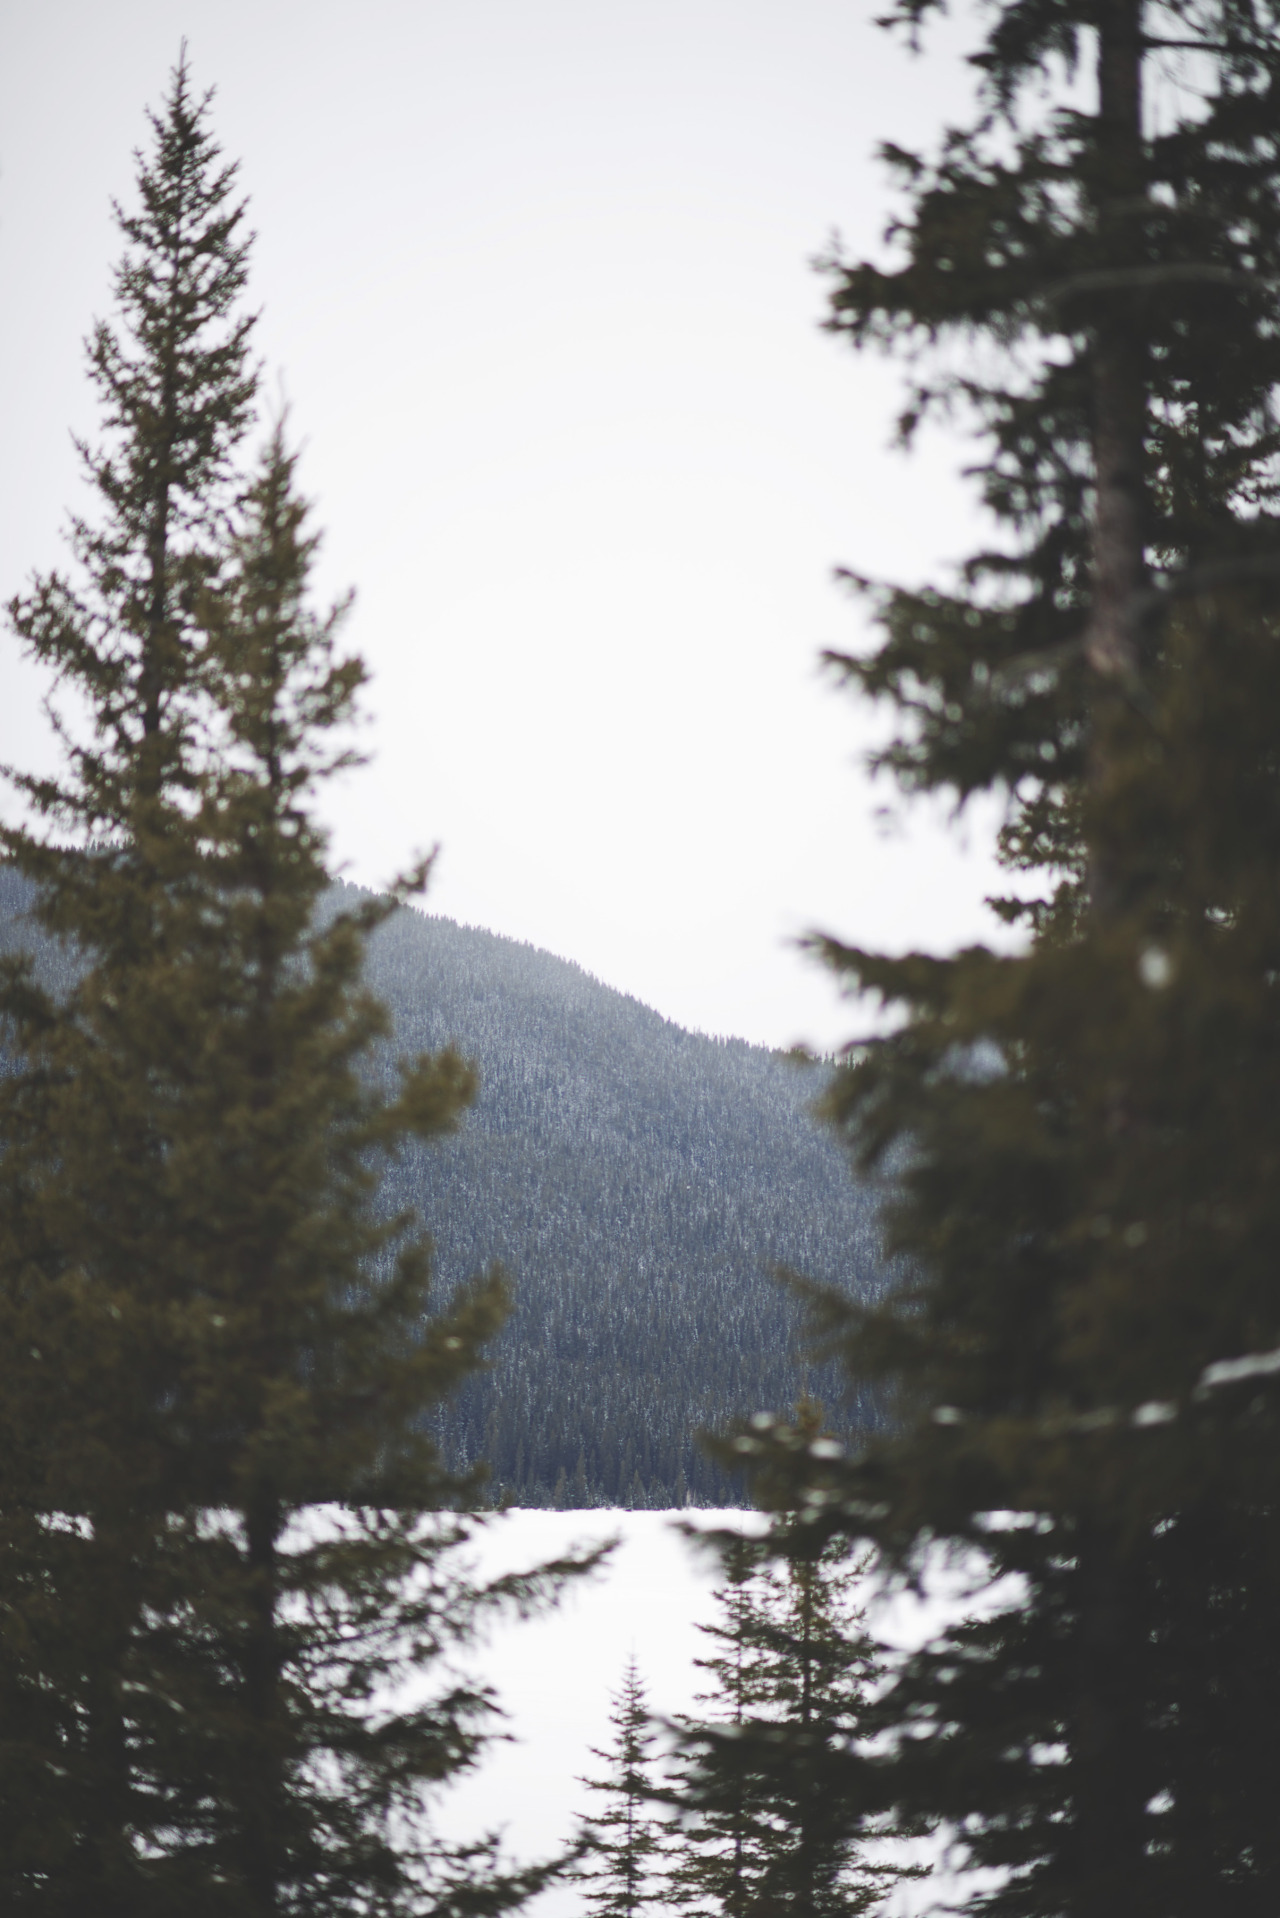 teapalm:  meow-tins in kananaskis by Tasha Marie